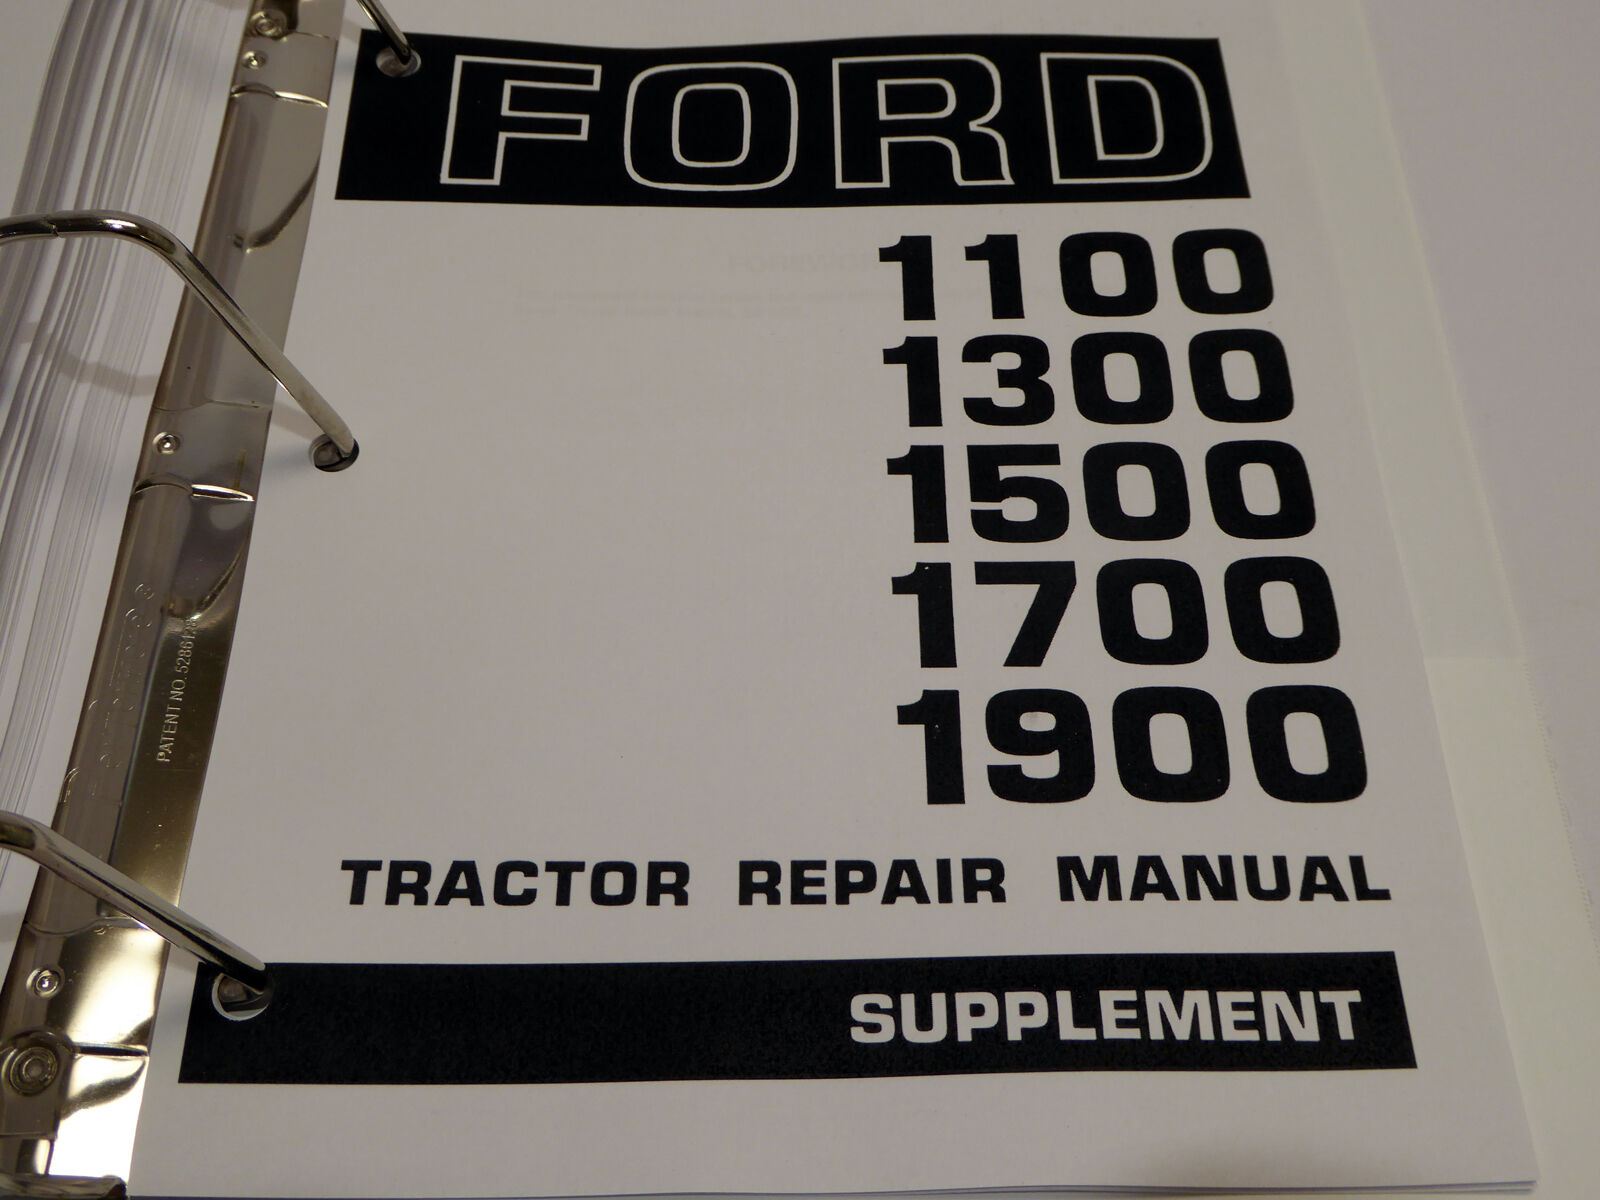 [SODI_2457]   5915A59 Buy Ford 1300 1500 1700 1900 Tractor Service Manual Repair Shop  Book ... | Wiring Library | 1984 Ford Tractor 1700 Wiring Diagram |  | Wiring Library